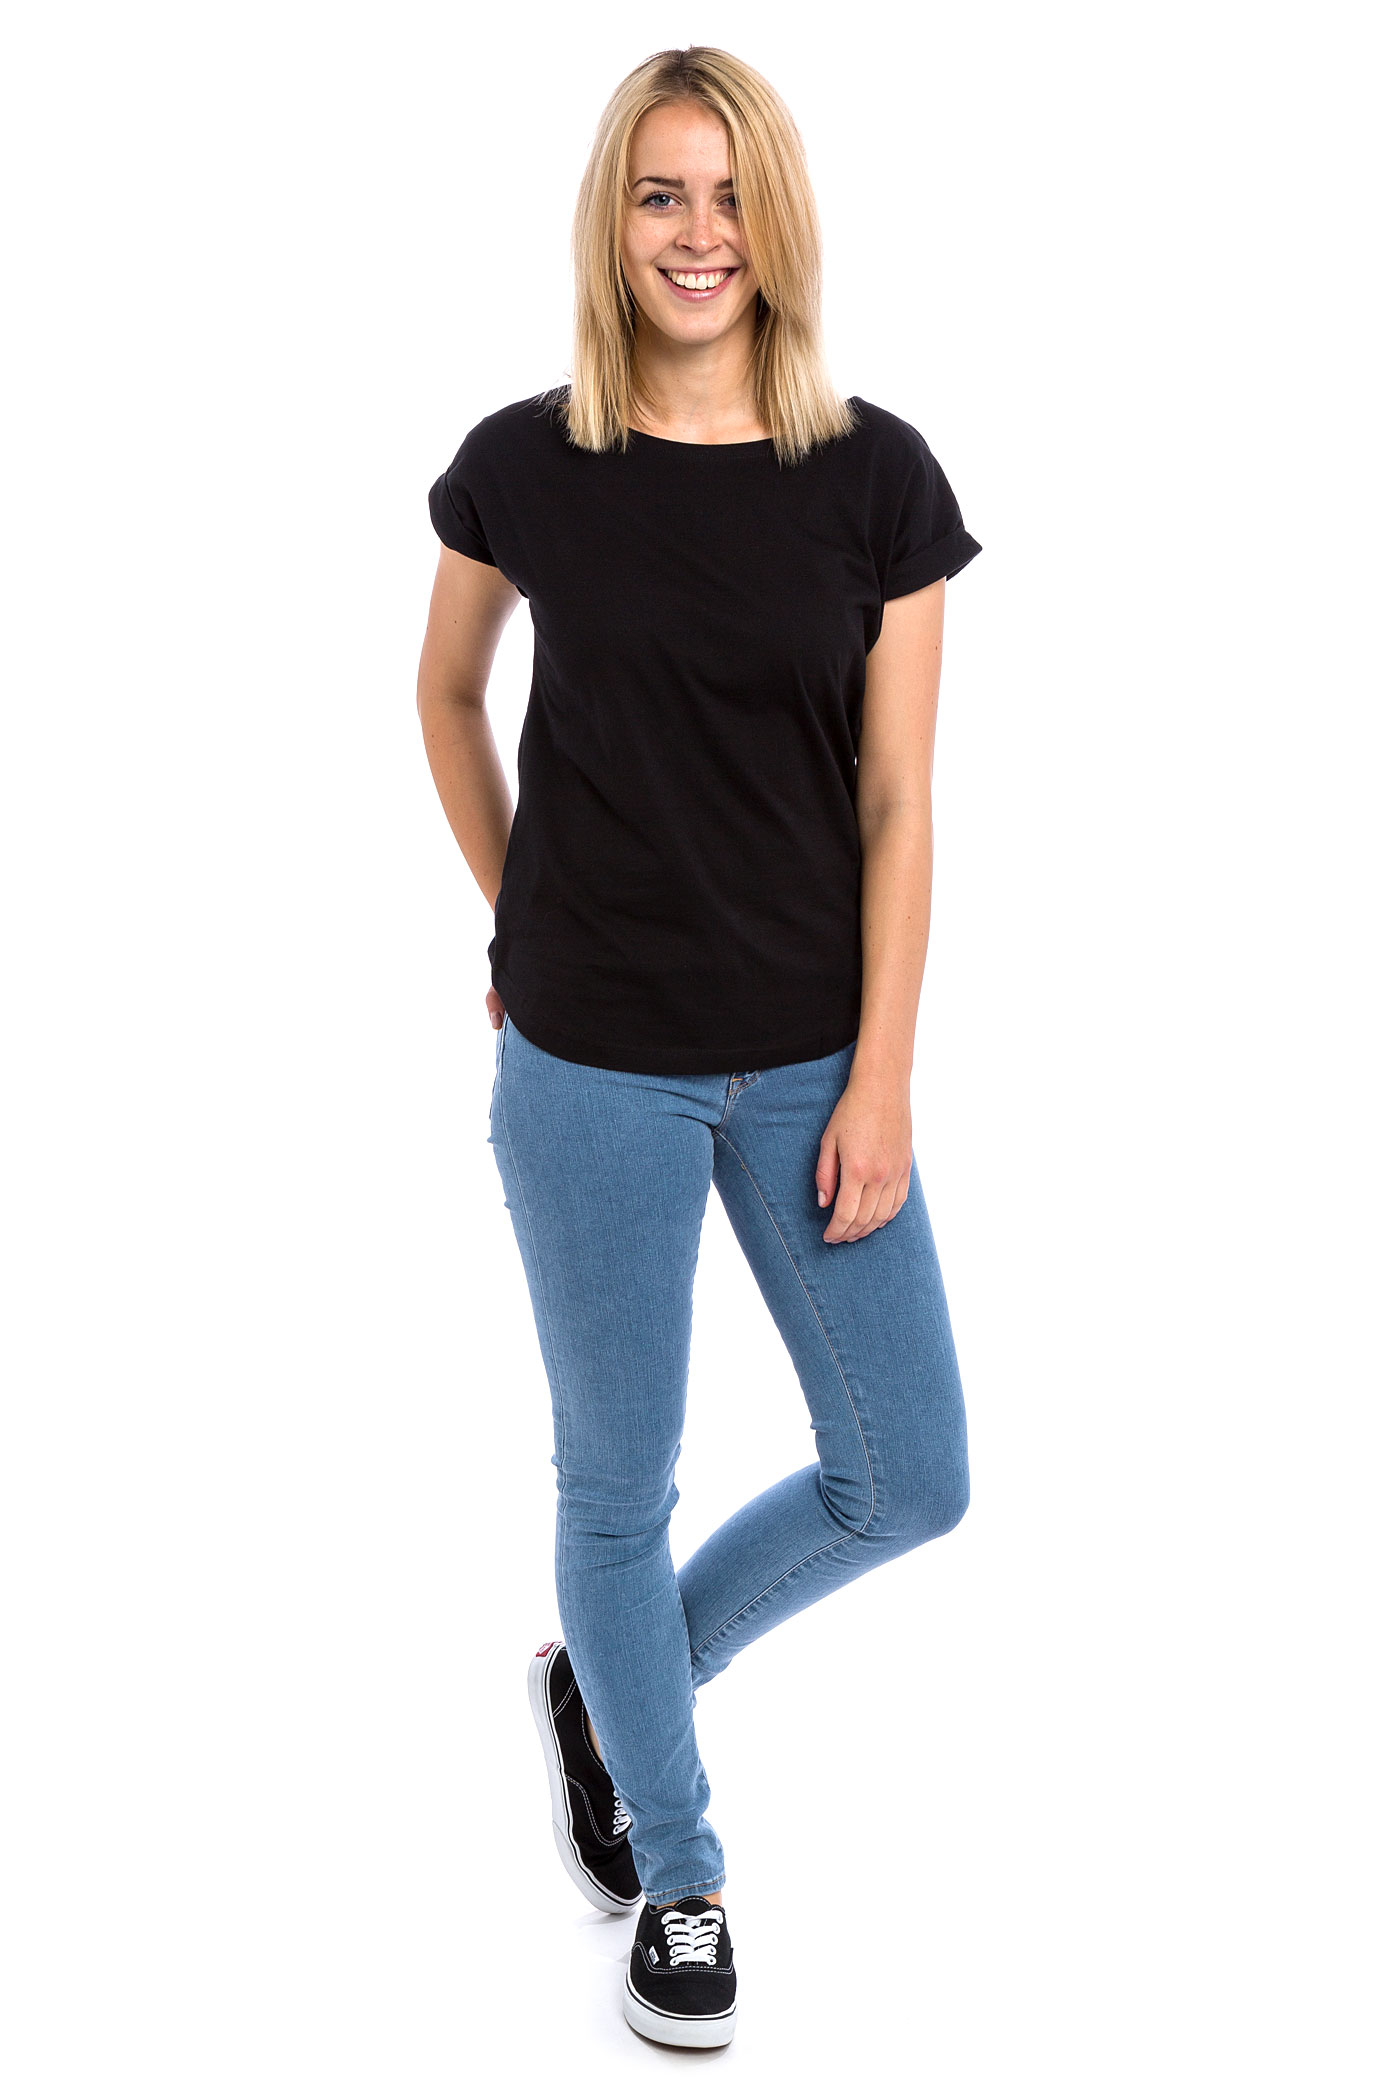 capitola women Clothing stores in capitola on ypcom see reviews, photos, directions, phone numbers and more for the best clothing stores in capitola, ca.